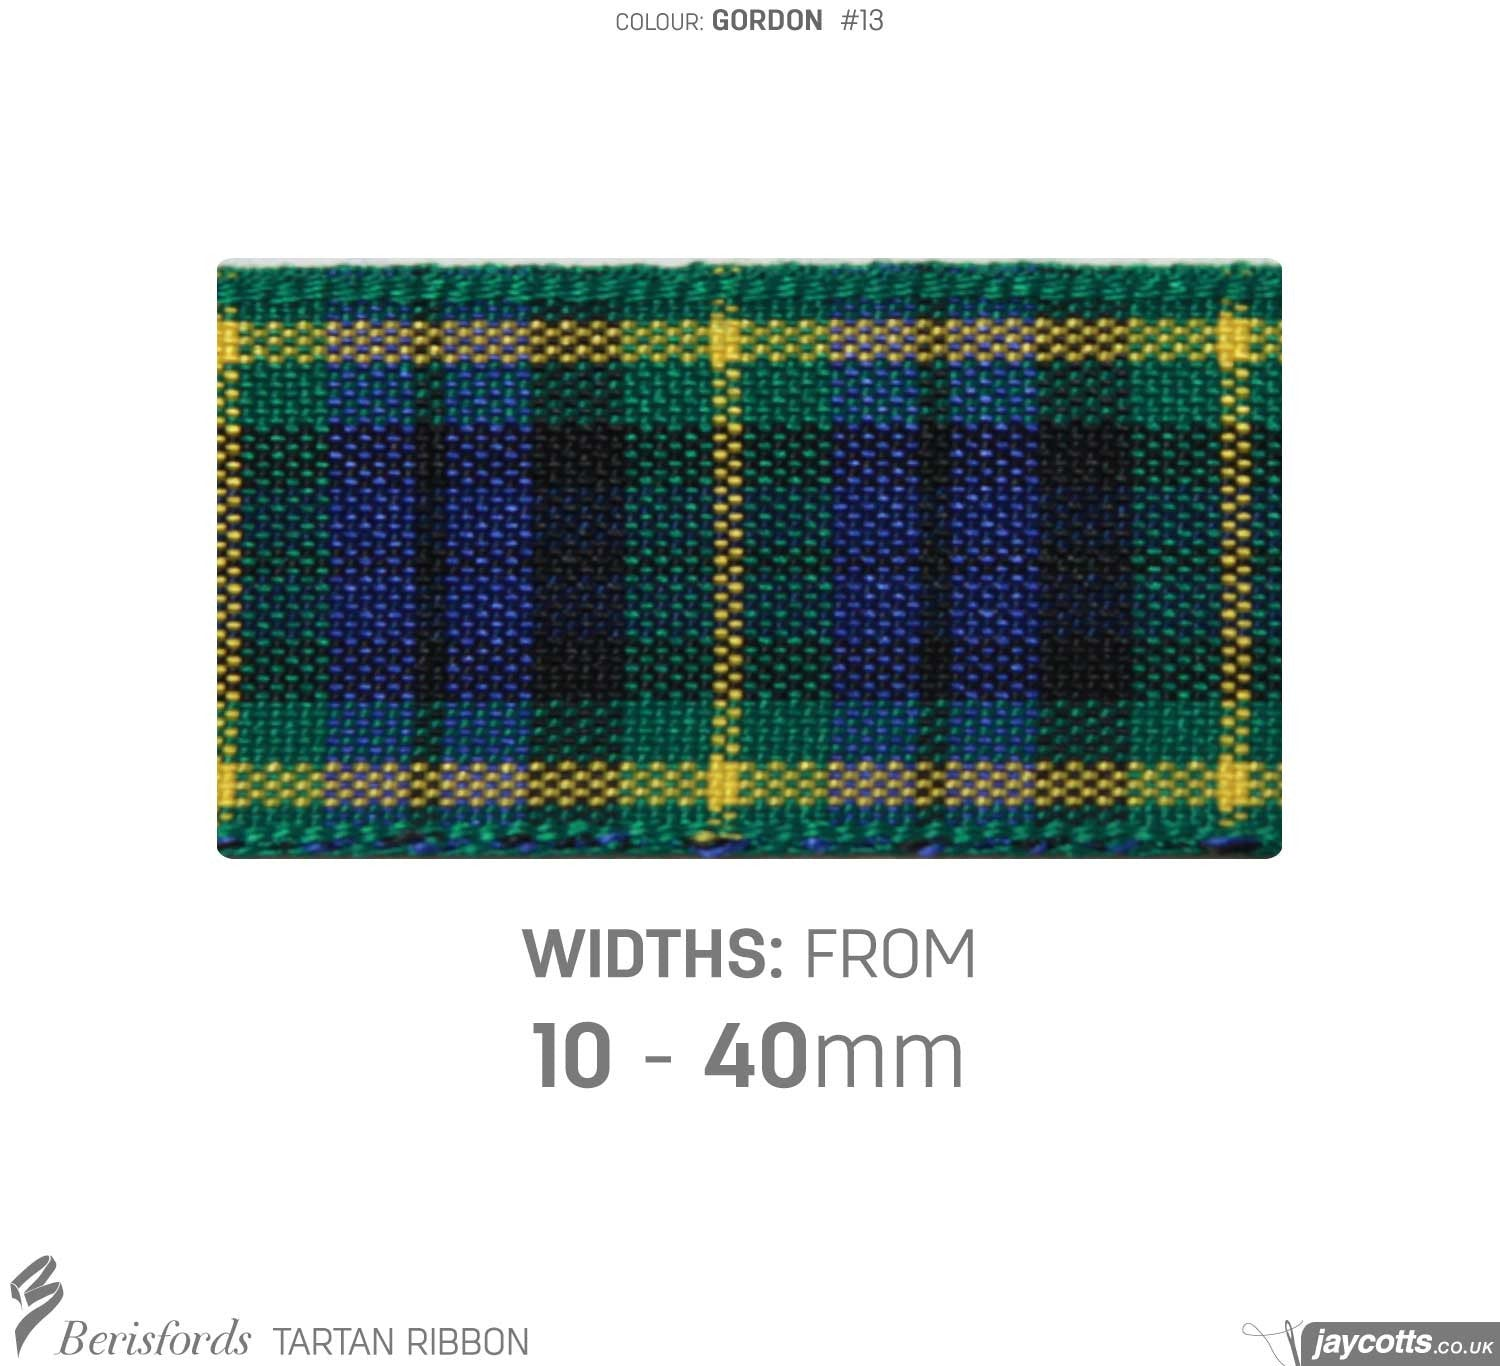 Berisfords Tartan Ribbon: #13 Gordon